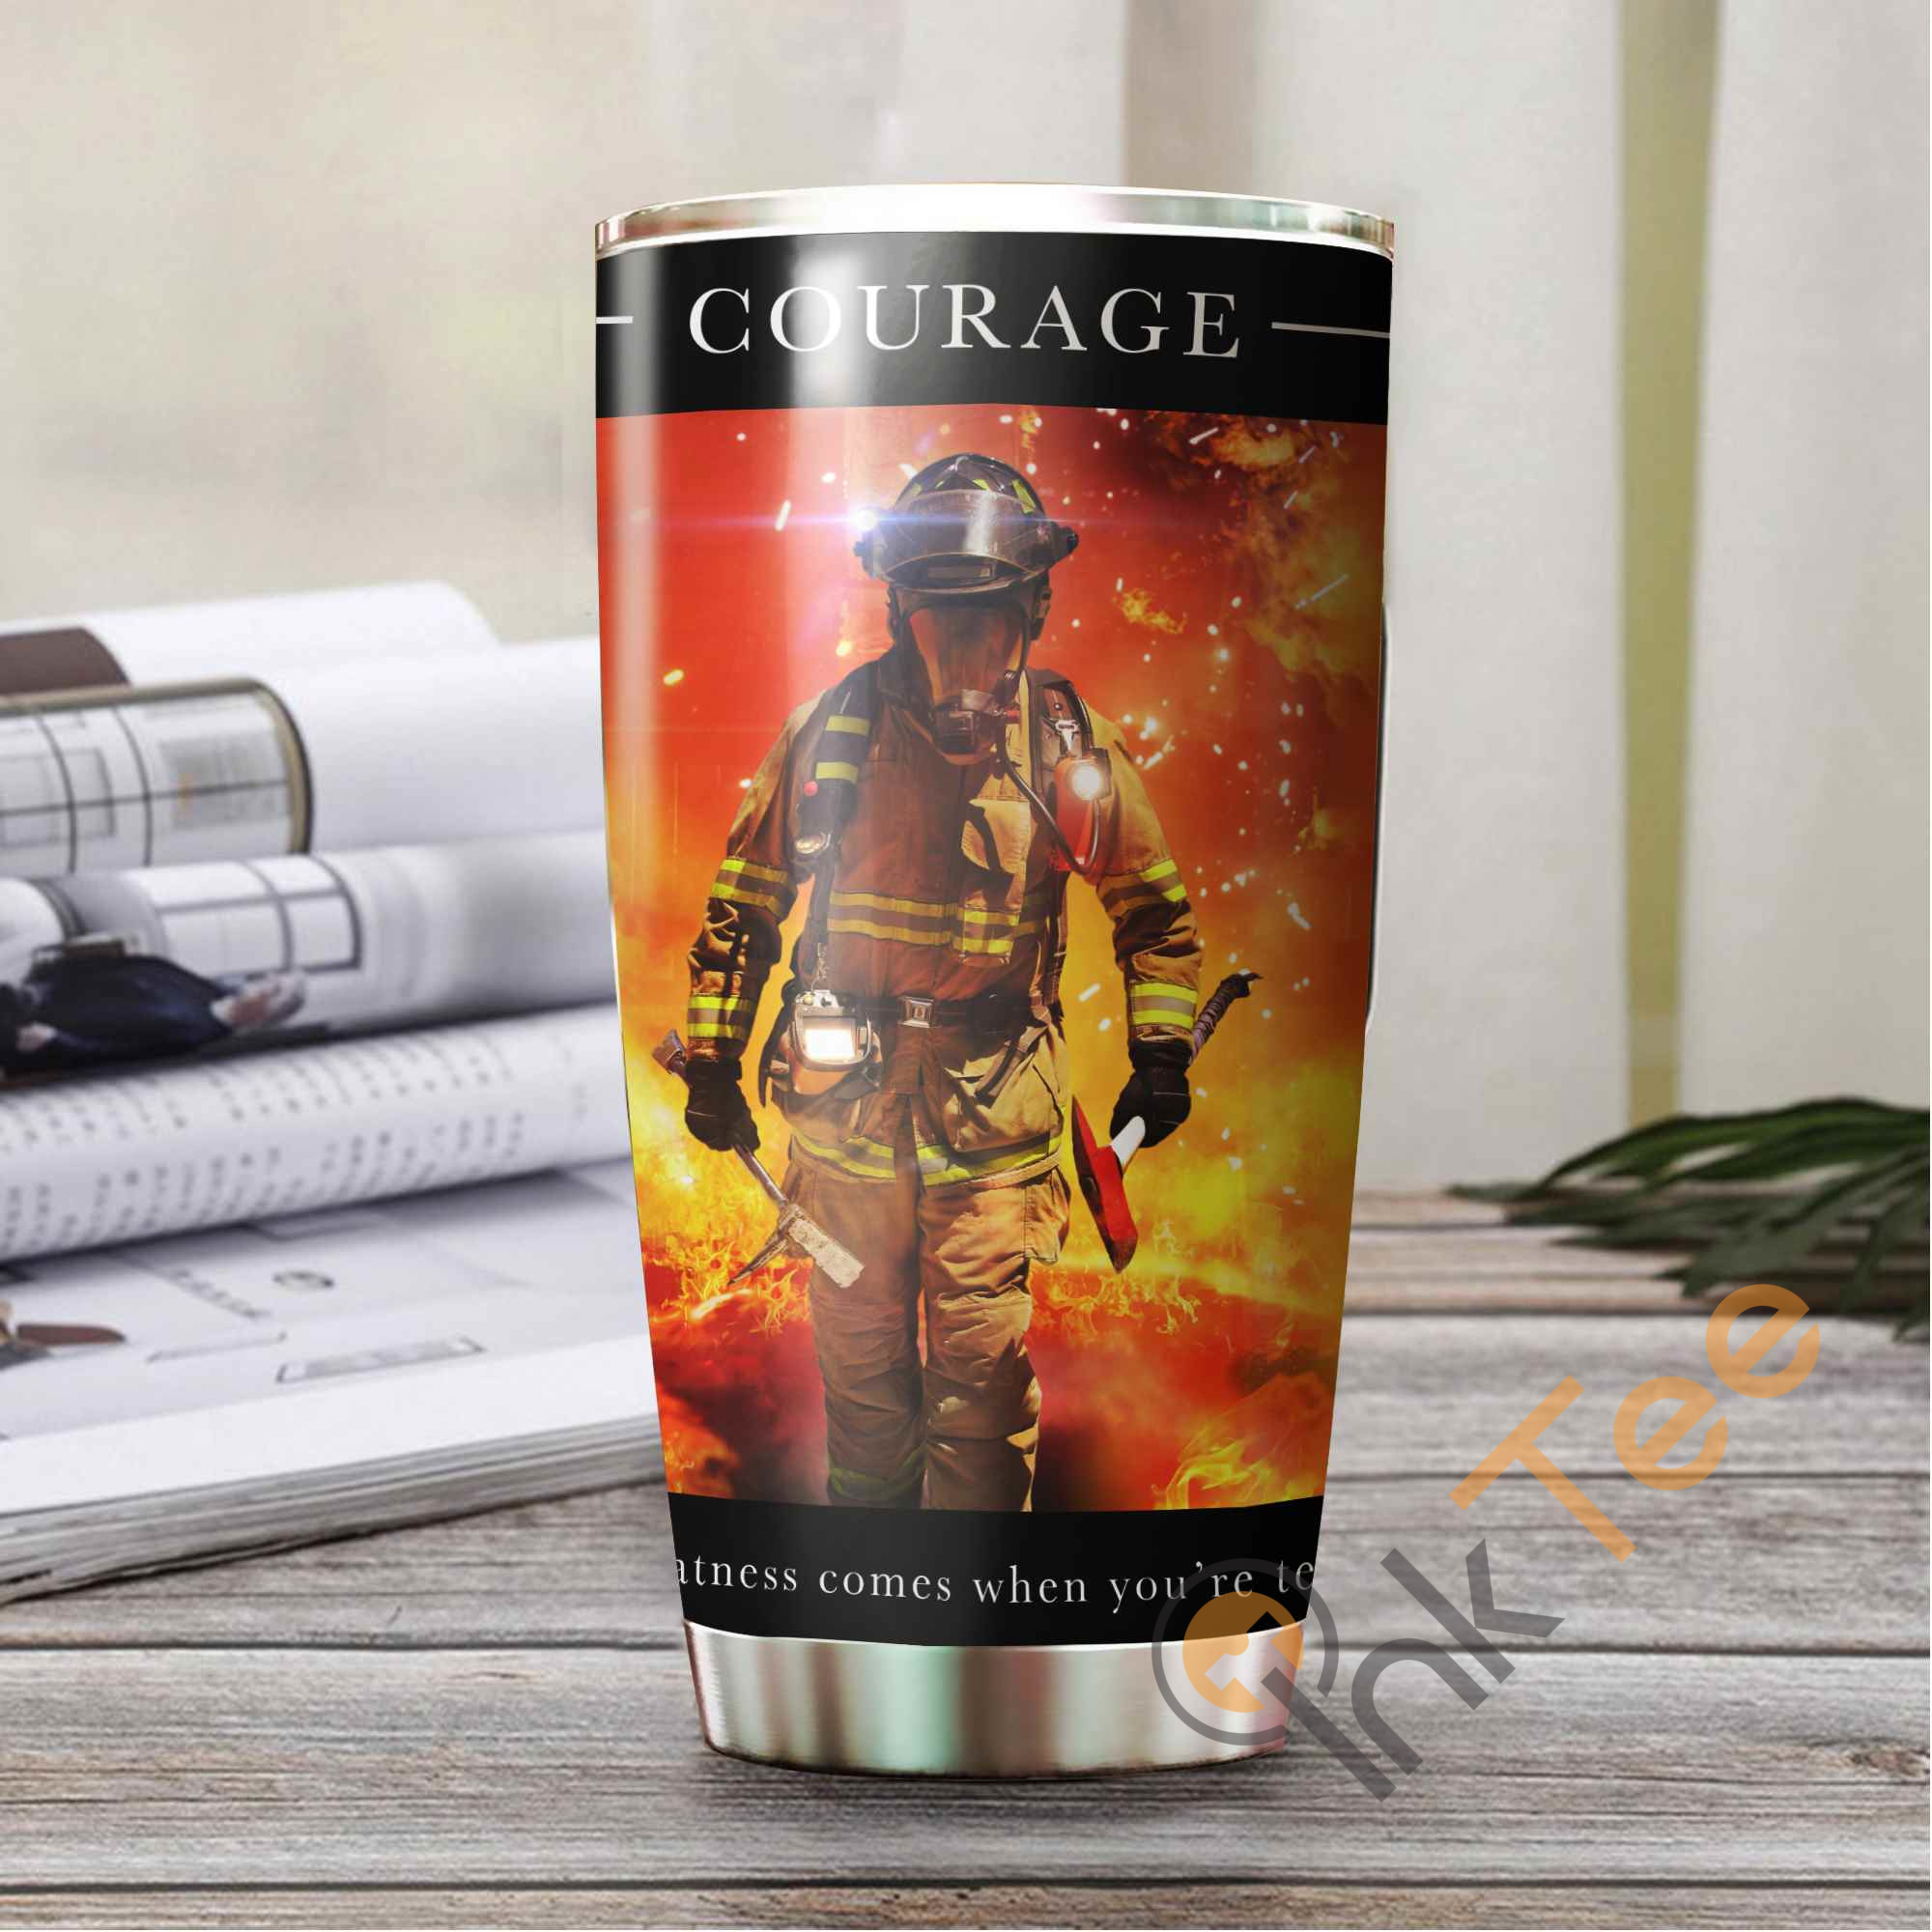 Firefighter's Courage Amazon Best Seller Sku 3588 Stainless Steel Tumbler